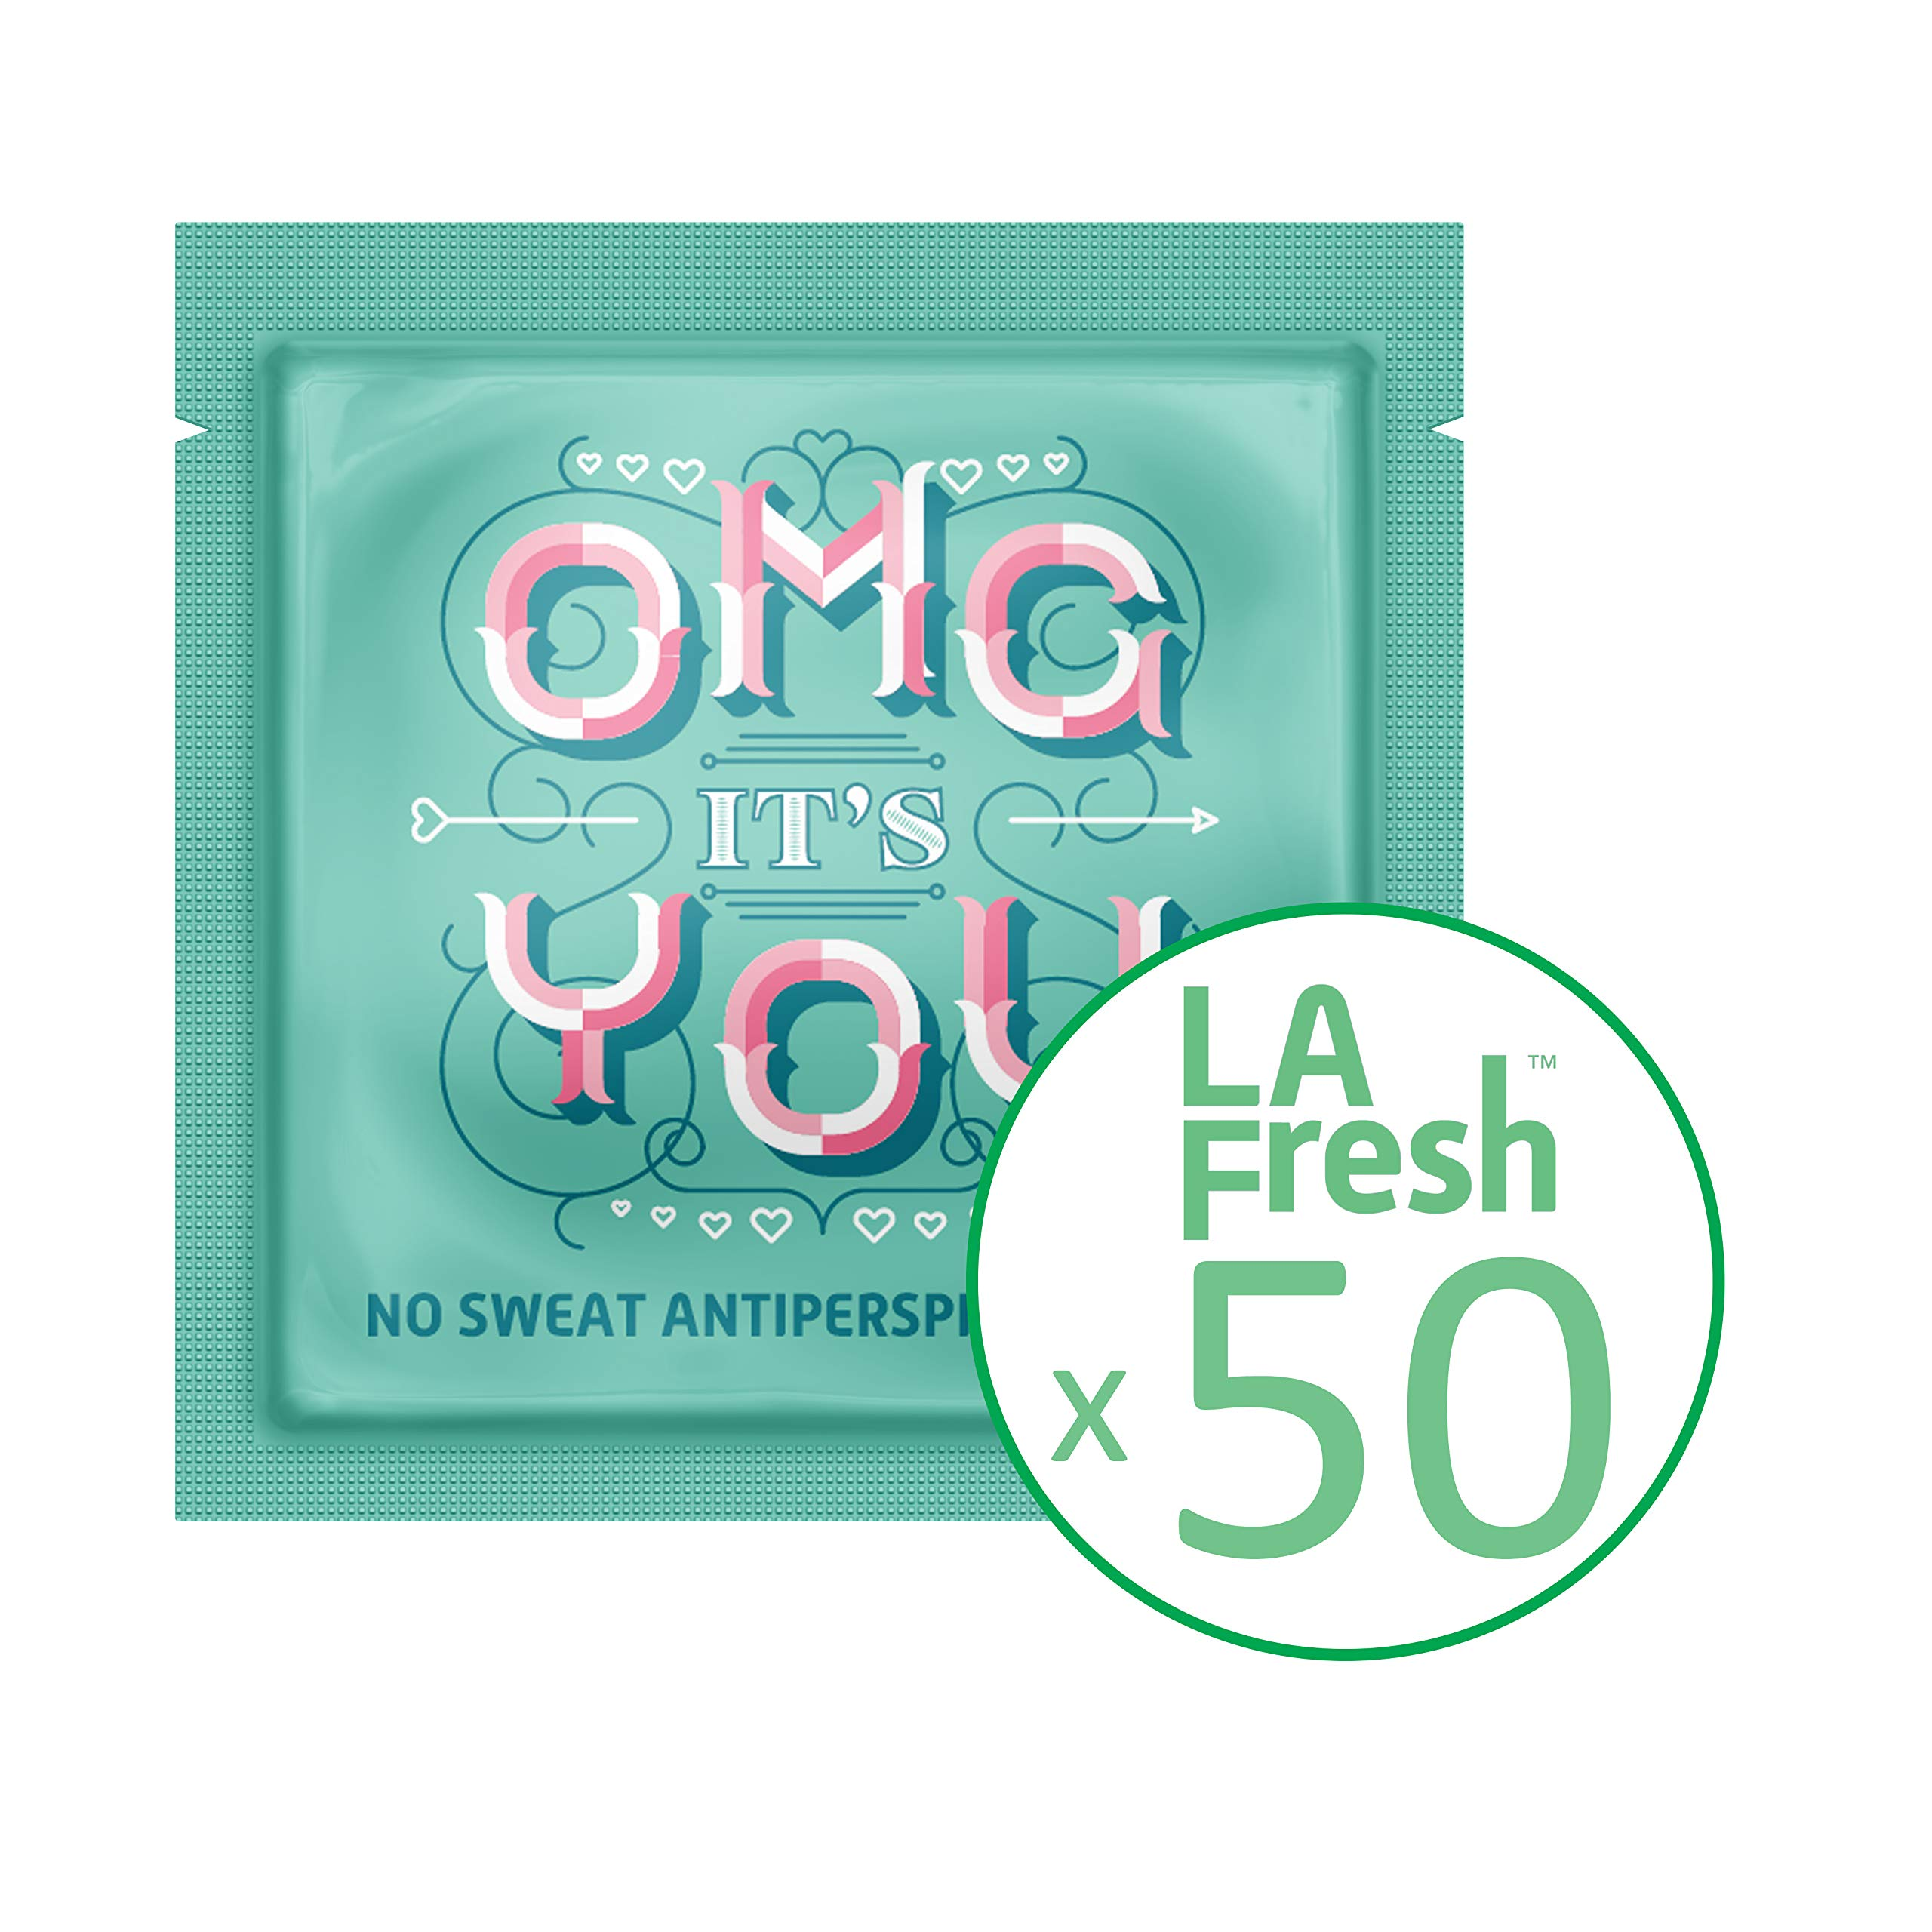 La Fresh Travel Lite Antiperspirant Wipes for Men and Women, Fresh Scent, 50 Count of Individually Sealed Packets by La Fresh